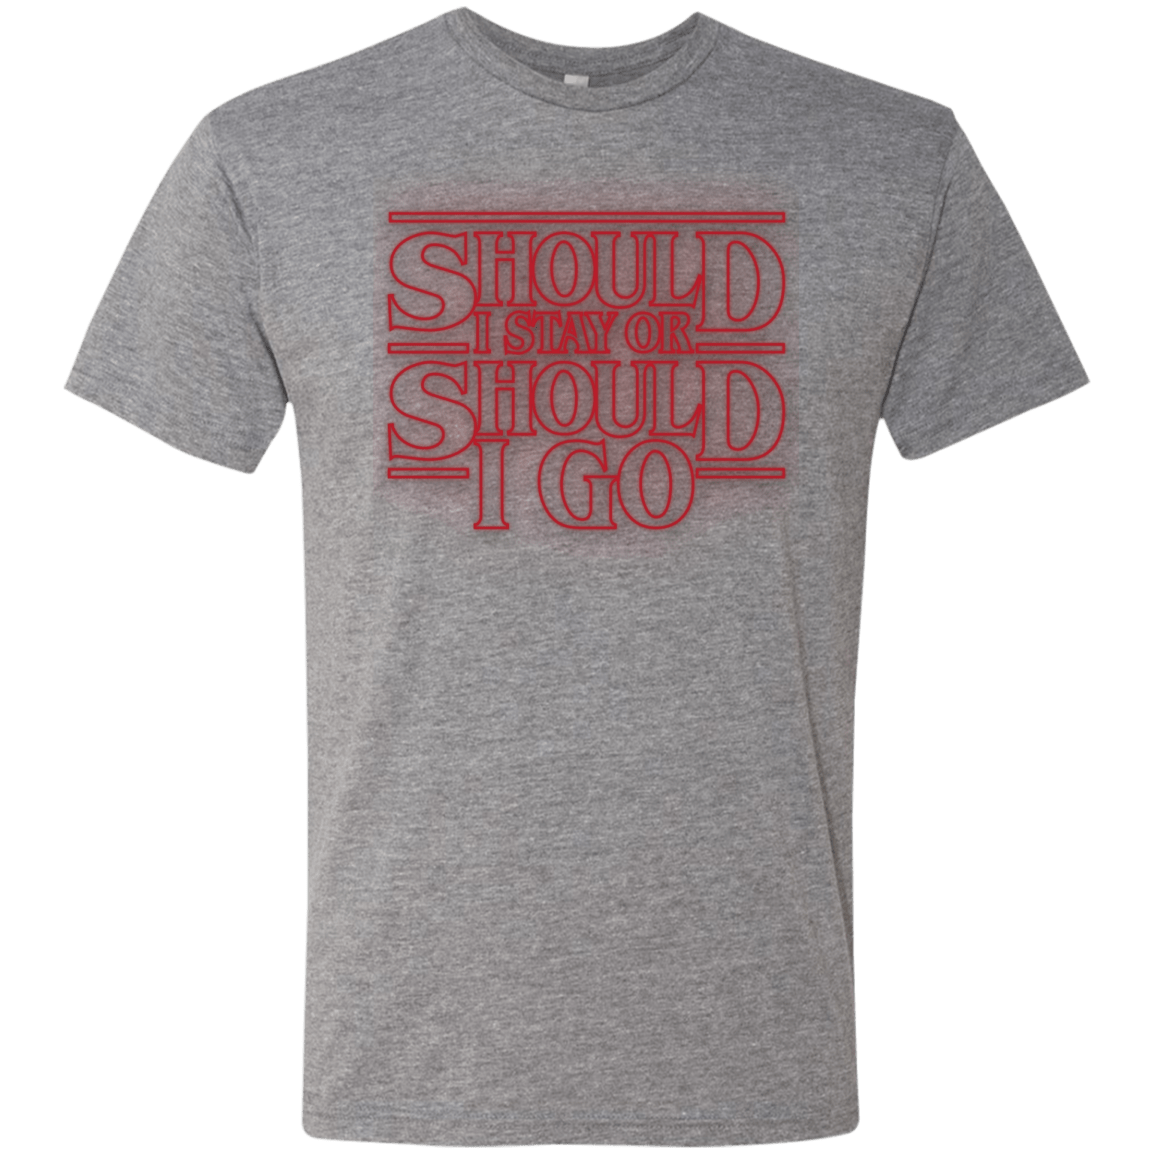 T-Shirts Premium Heather / Small Should I Stay Or Should I Go Men's Triblend T-Shirt